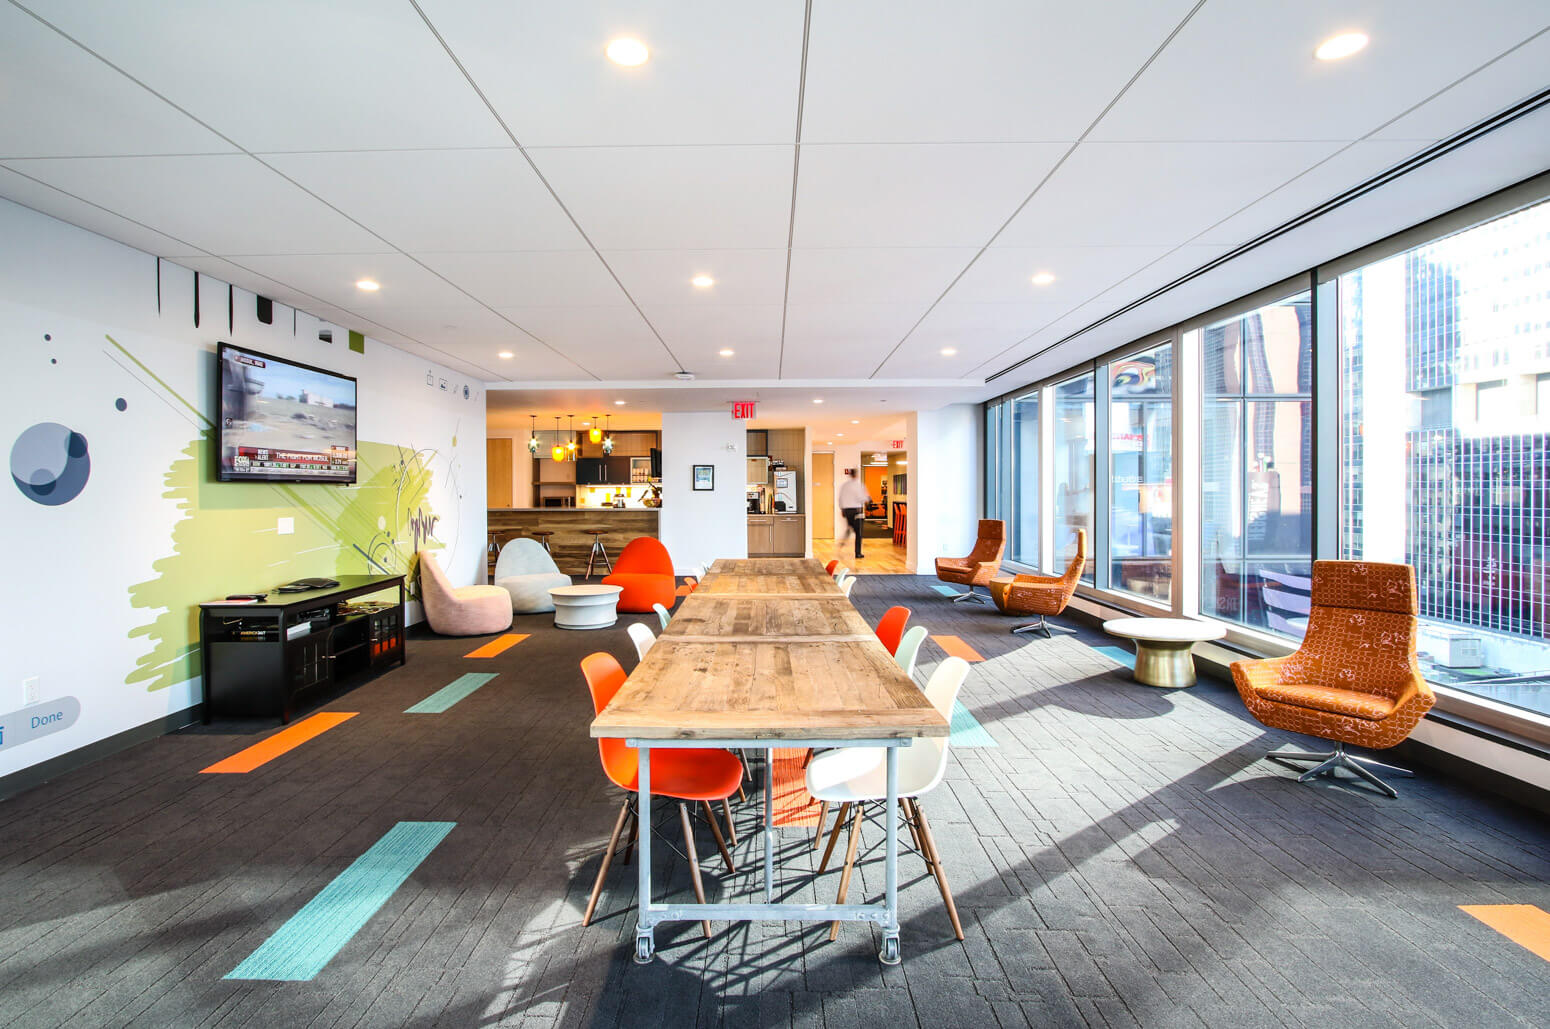 Merveilleux Adobe NYC Killer Spaces 2 ...